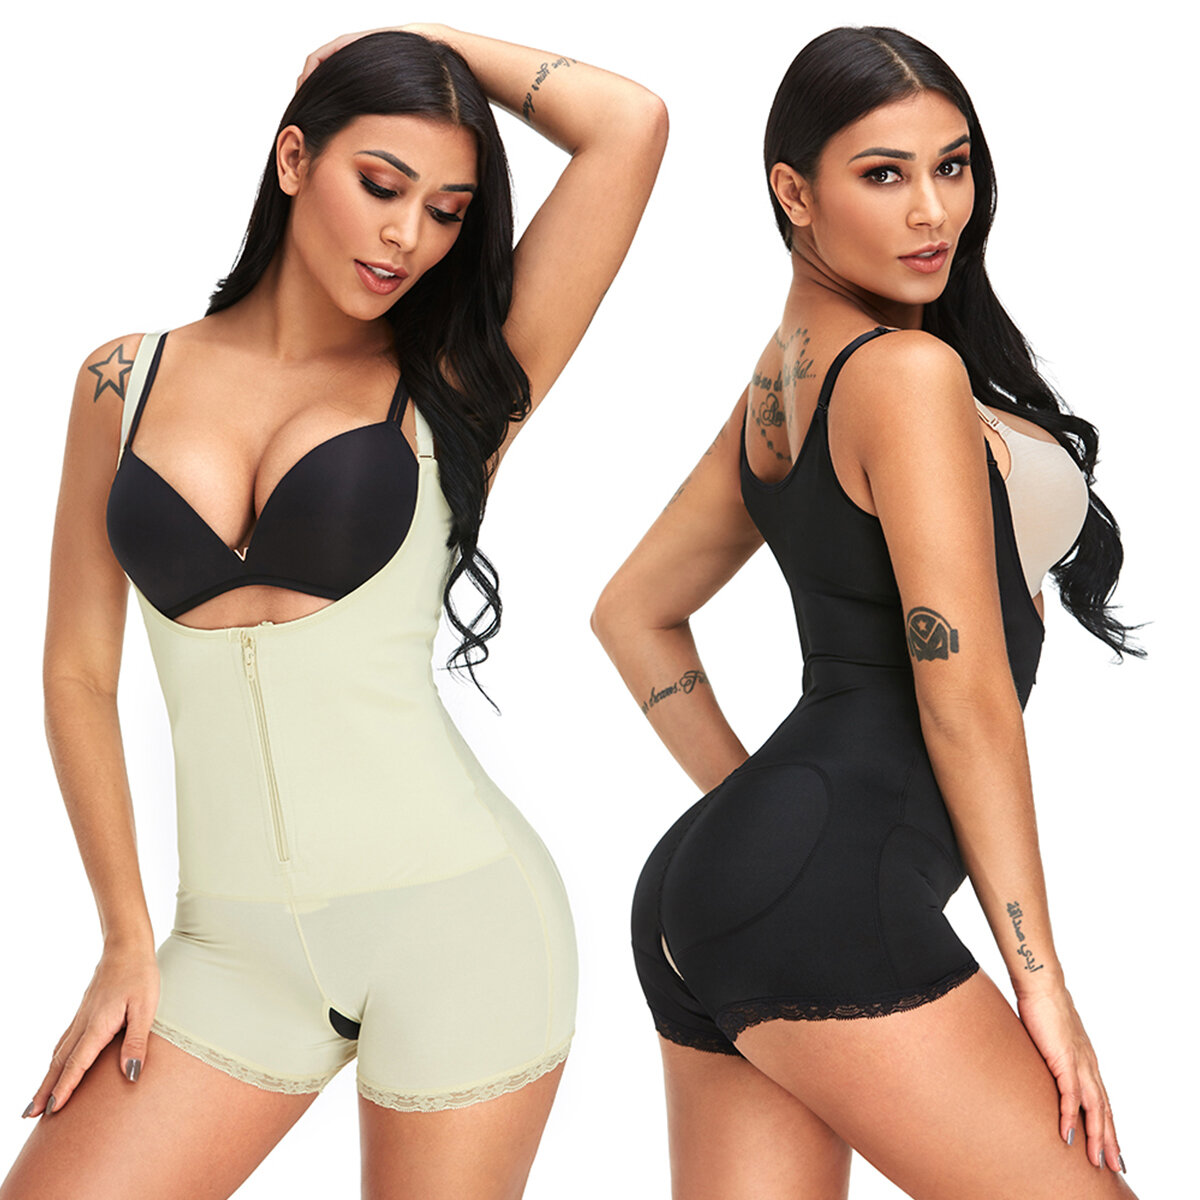 Women Body-Shaping Clothes Girdles for Belly Reducing Shapewear Firm Control Abdomen Waist Support Trainer Slimming Girdle Belt